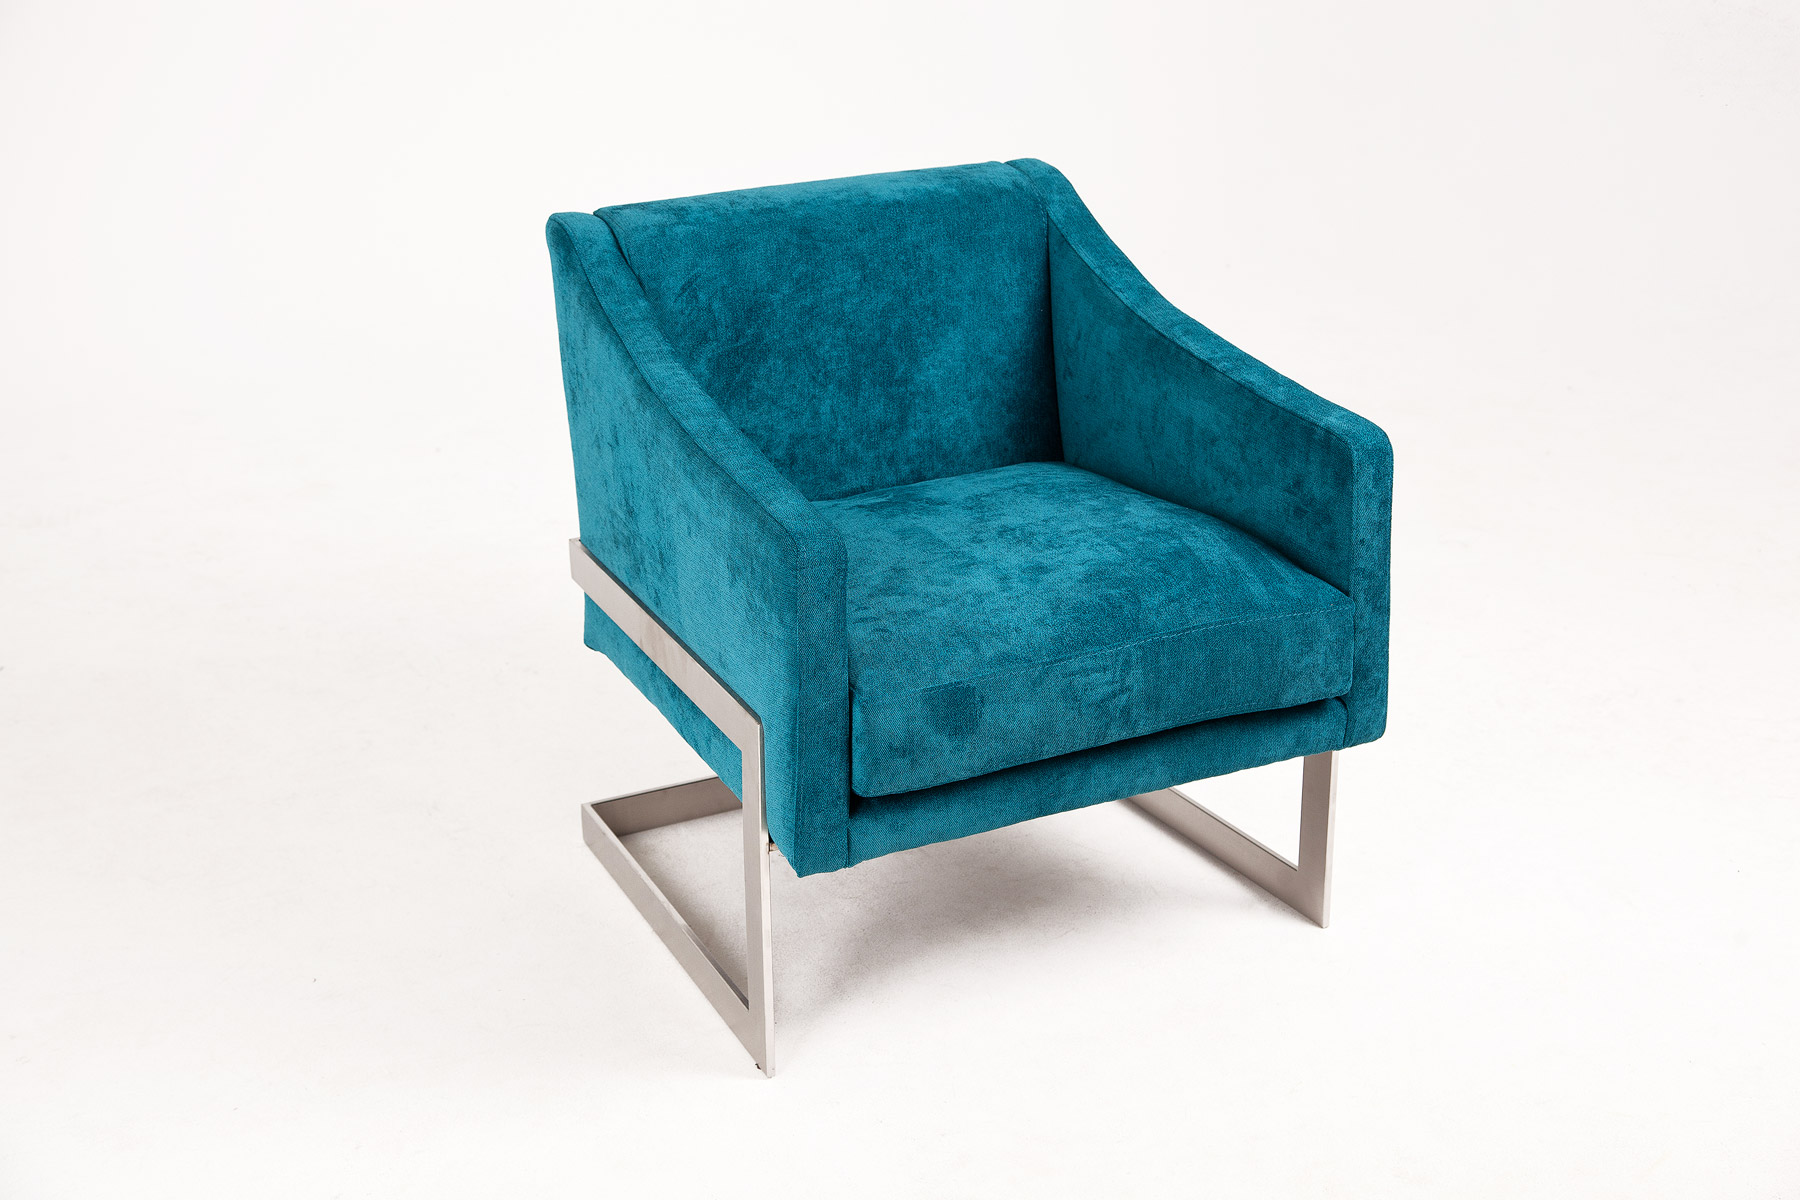 Luxury armchair in a blue velvet fabric and steel legs size 69/70/77cm by Urvission Interiors price £749